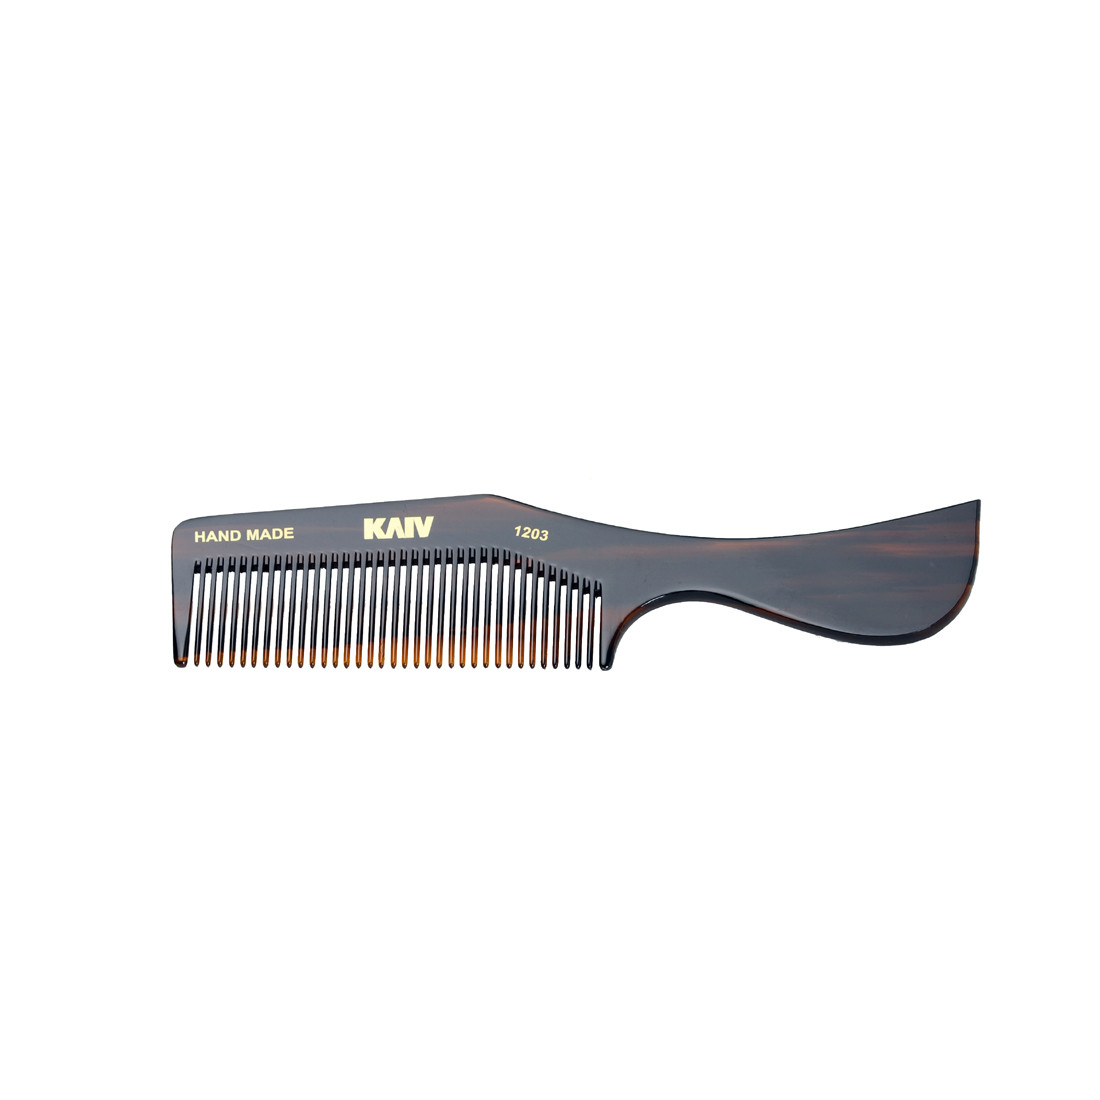 Kaiv Handmade Grooming Comb with Curve Style Handle